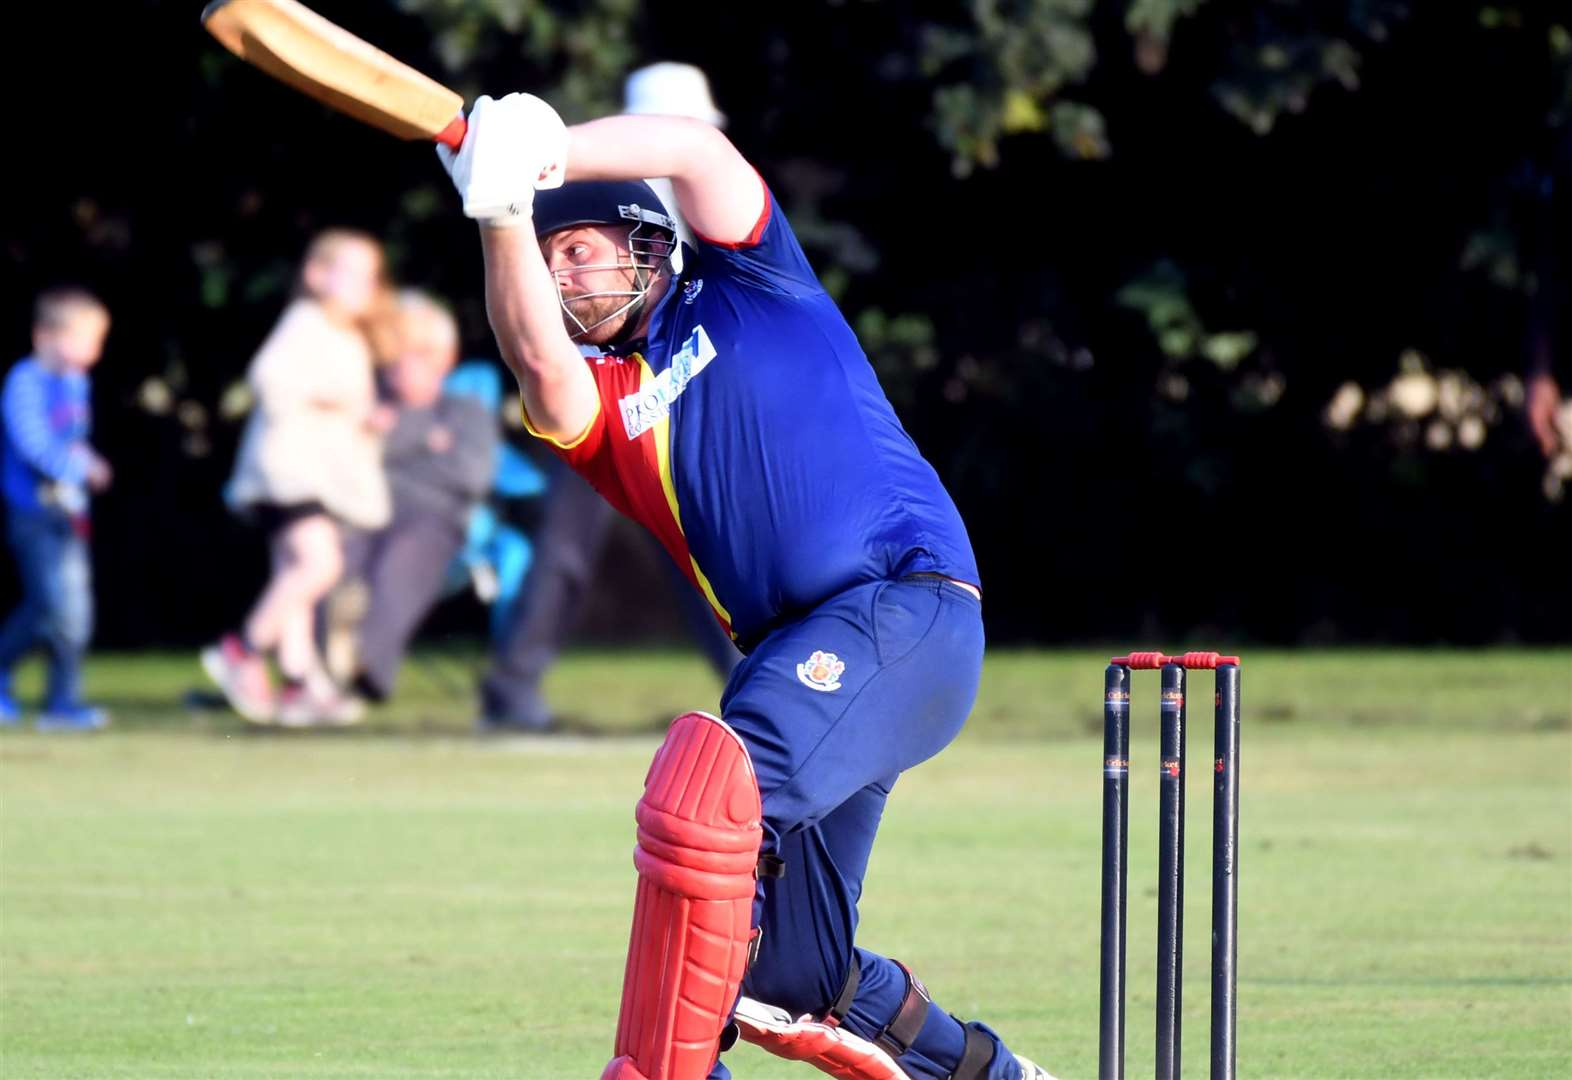 Cricket: Wisbech opener's 50 in rain-affected defeat